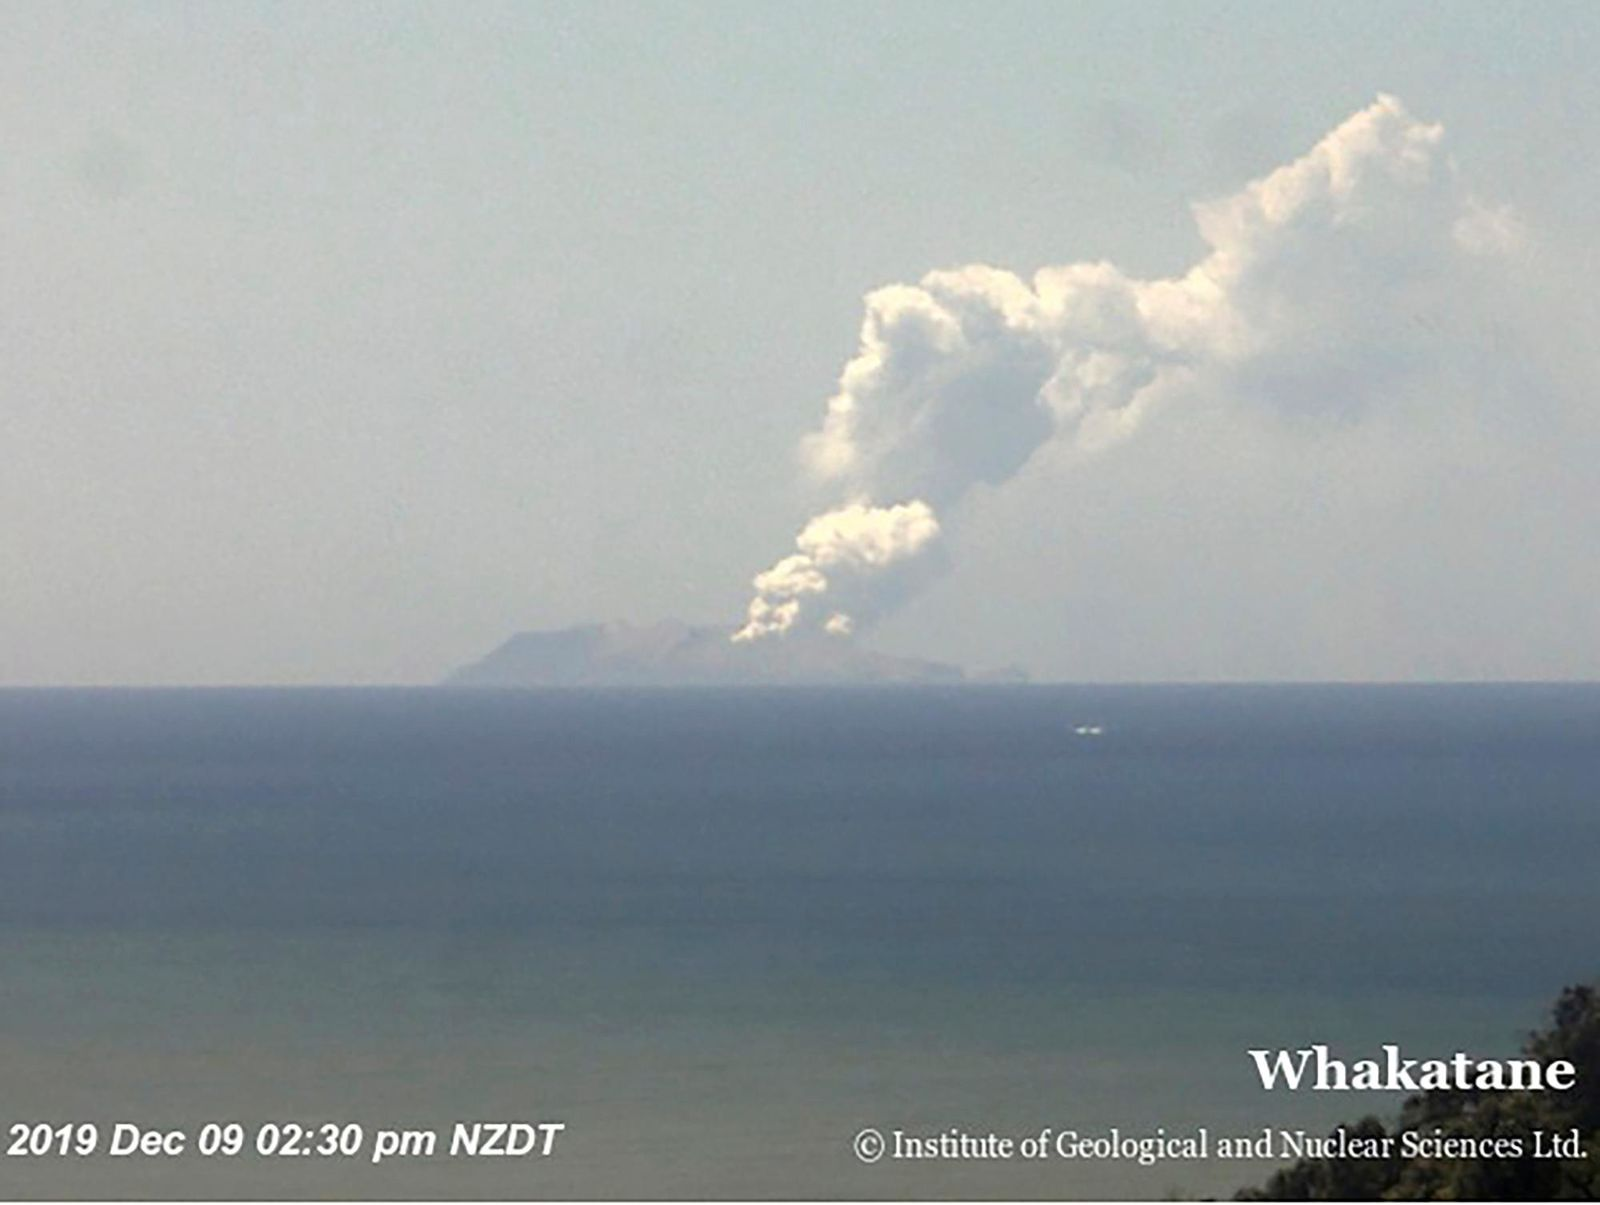 This image released by GNS Science, shows plumes of smoke from a volcanic eruption on White Island, seen from Whakatane, New Zealand Monday, Dec. 9, 2019. (GNS Science via AP)